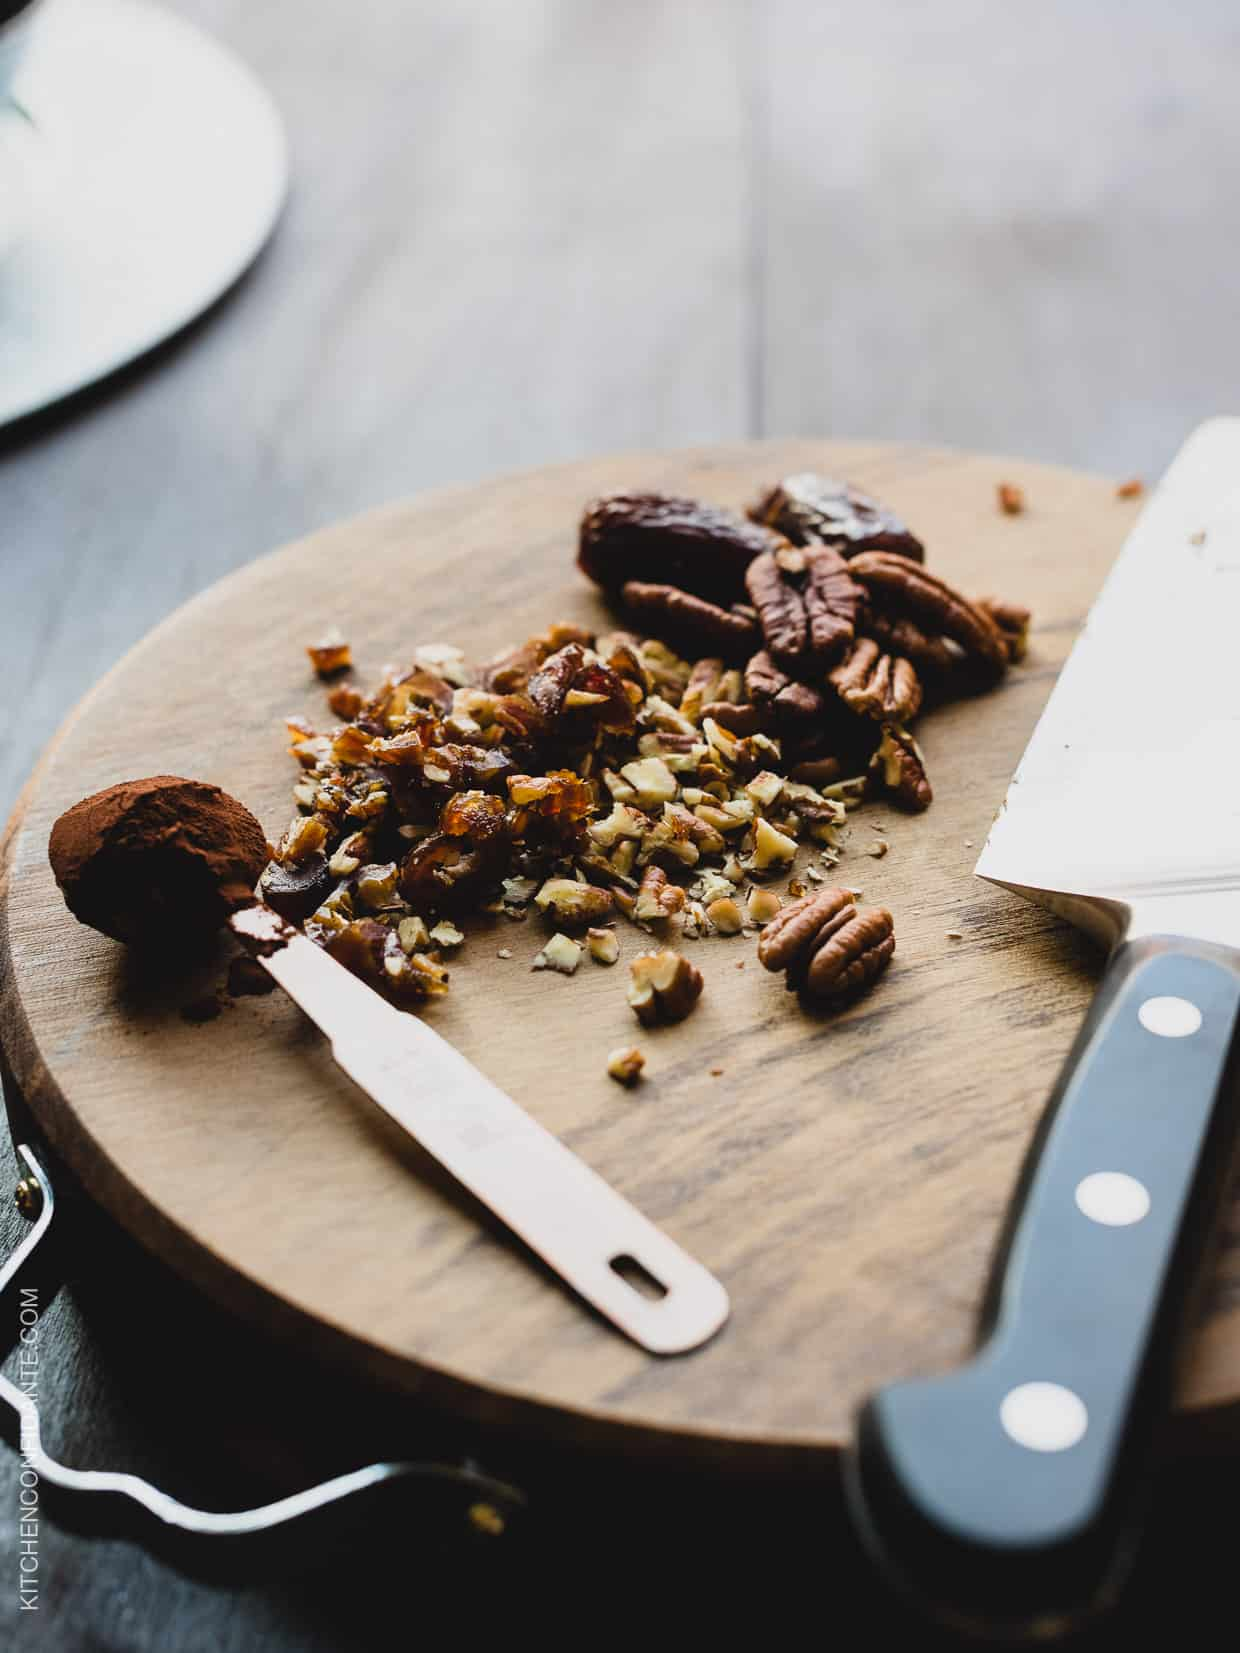 Chopped dates and pecans on a wooden cutting board.